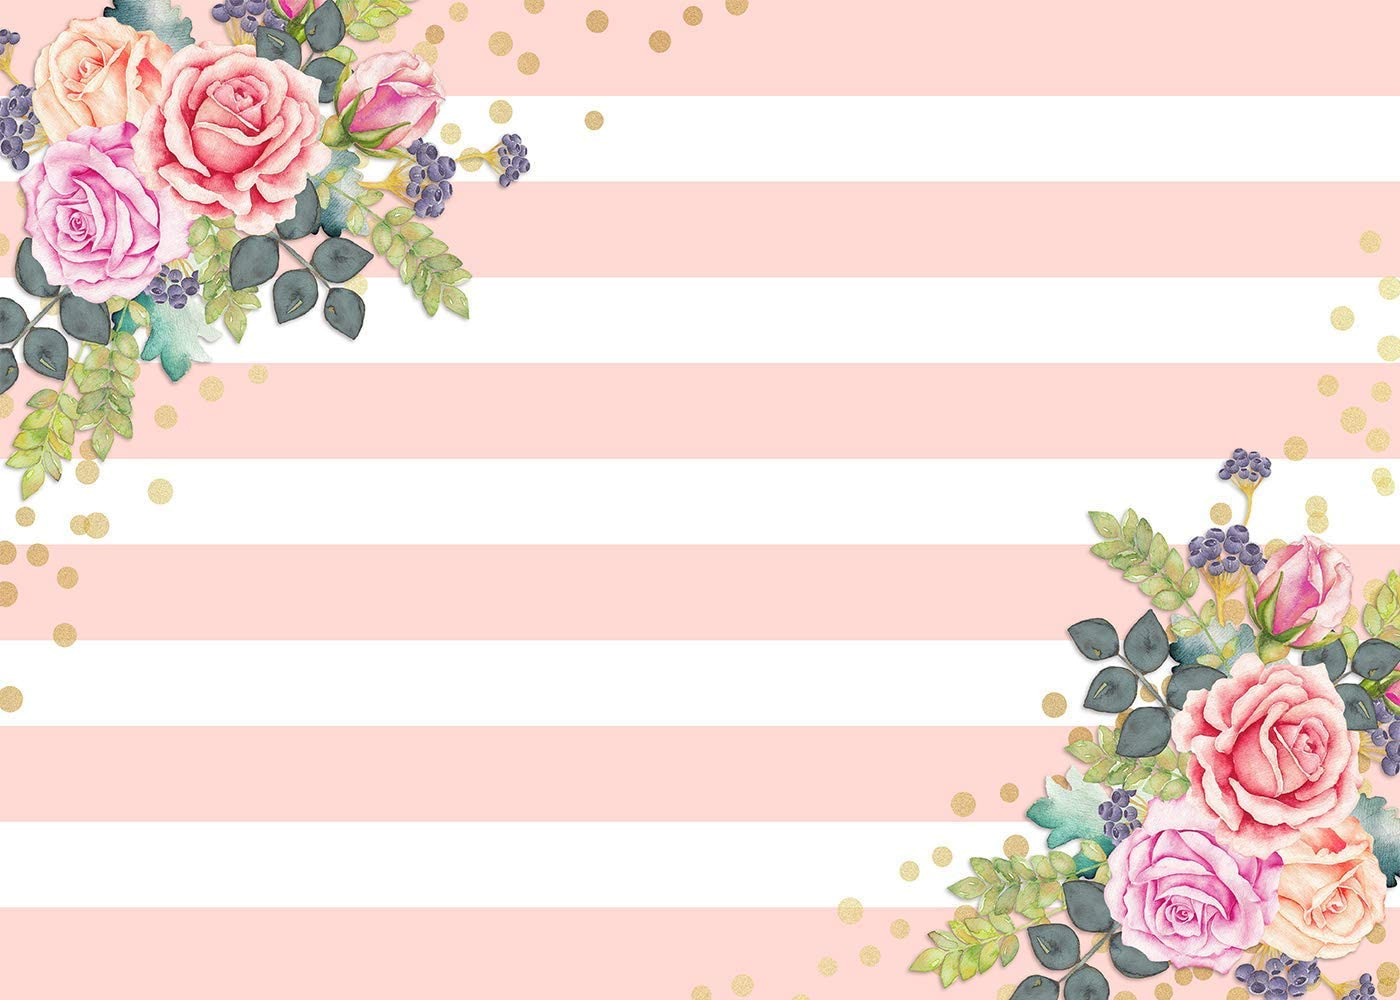 10x8ft Flower Background Pink and White Strips Photography Backdrop Birthday Event Photo Props Floral Wall Mural LYFU519